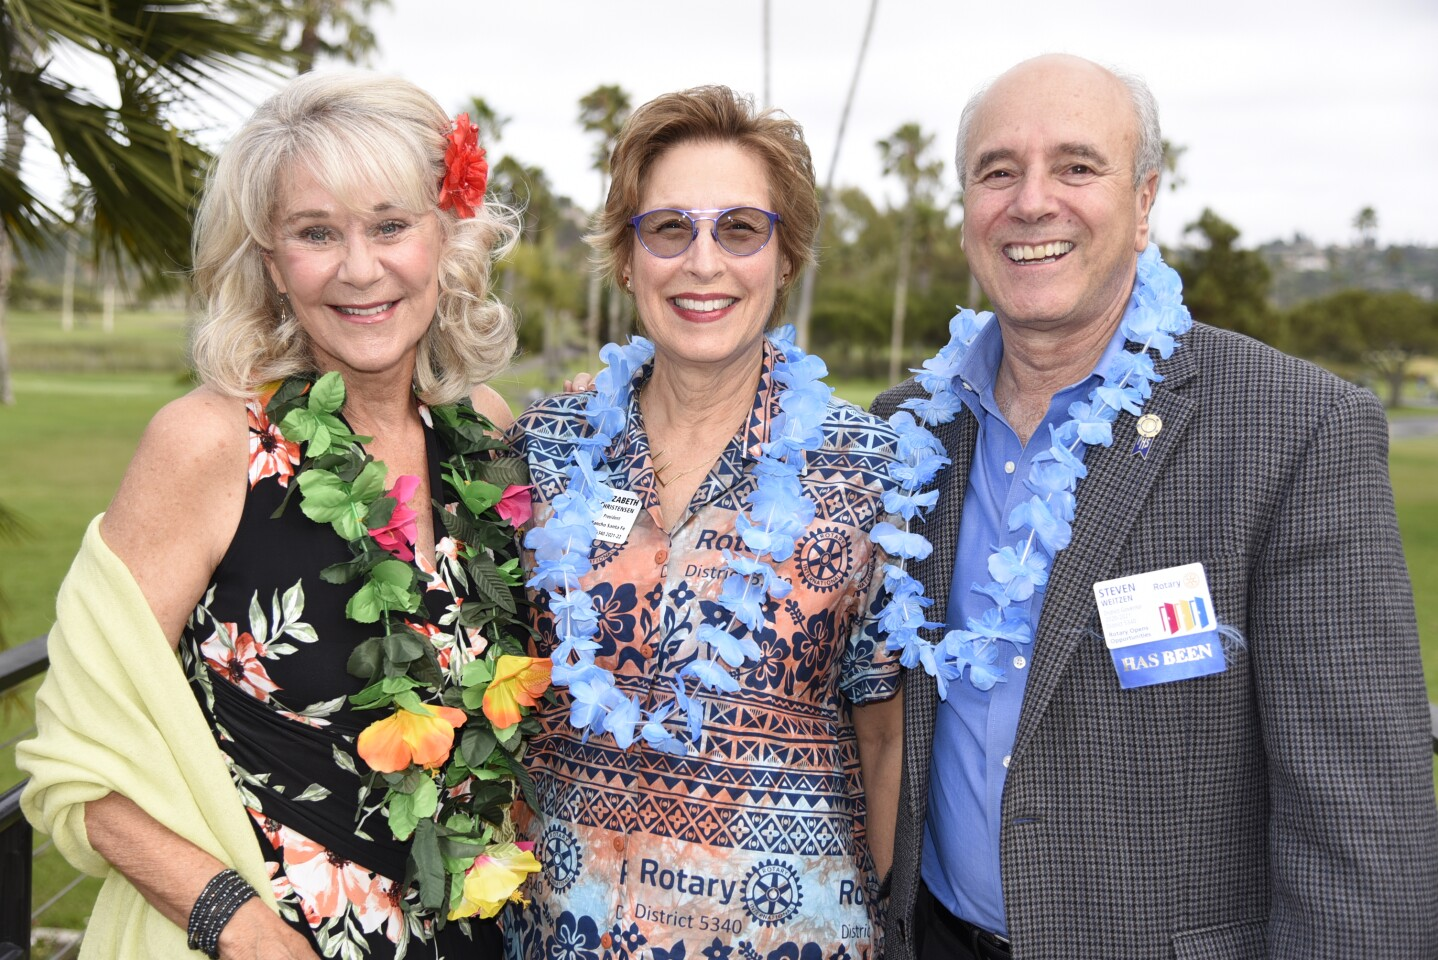 RSF Rotary outgoing President Robin Chappelow, President Elizabeth Christensen, Immediate Past District Governor Steven Weitzen